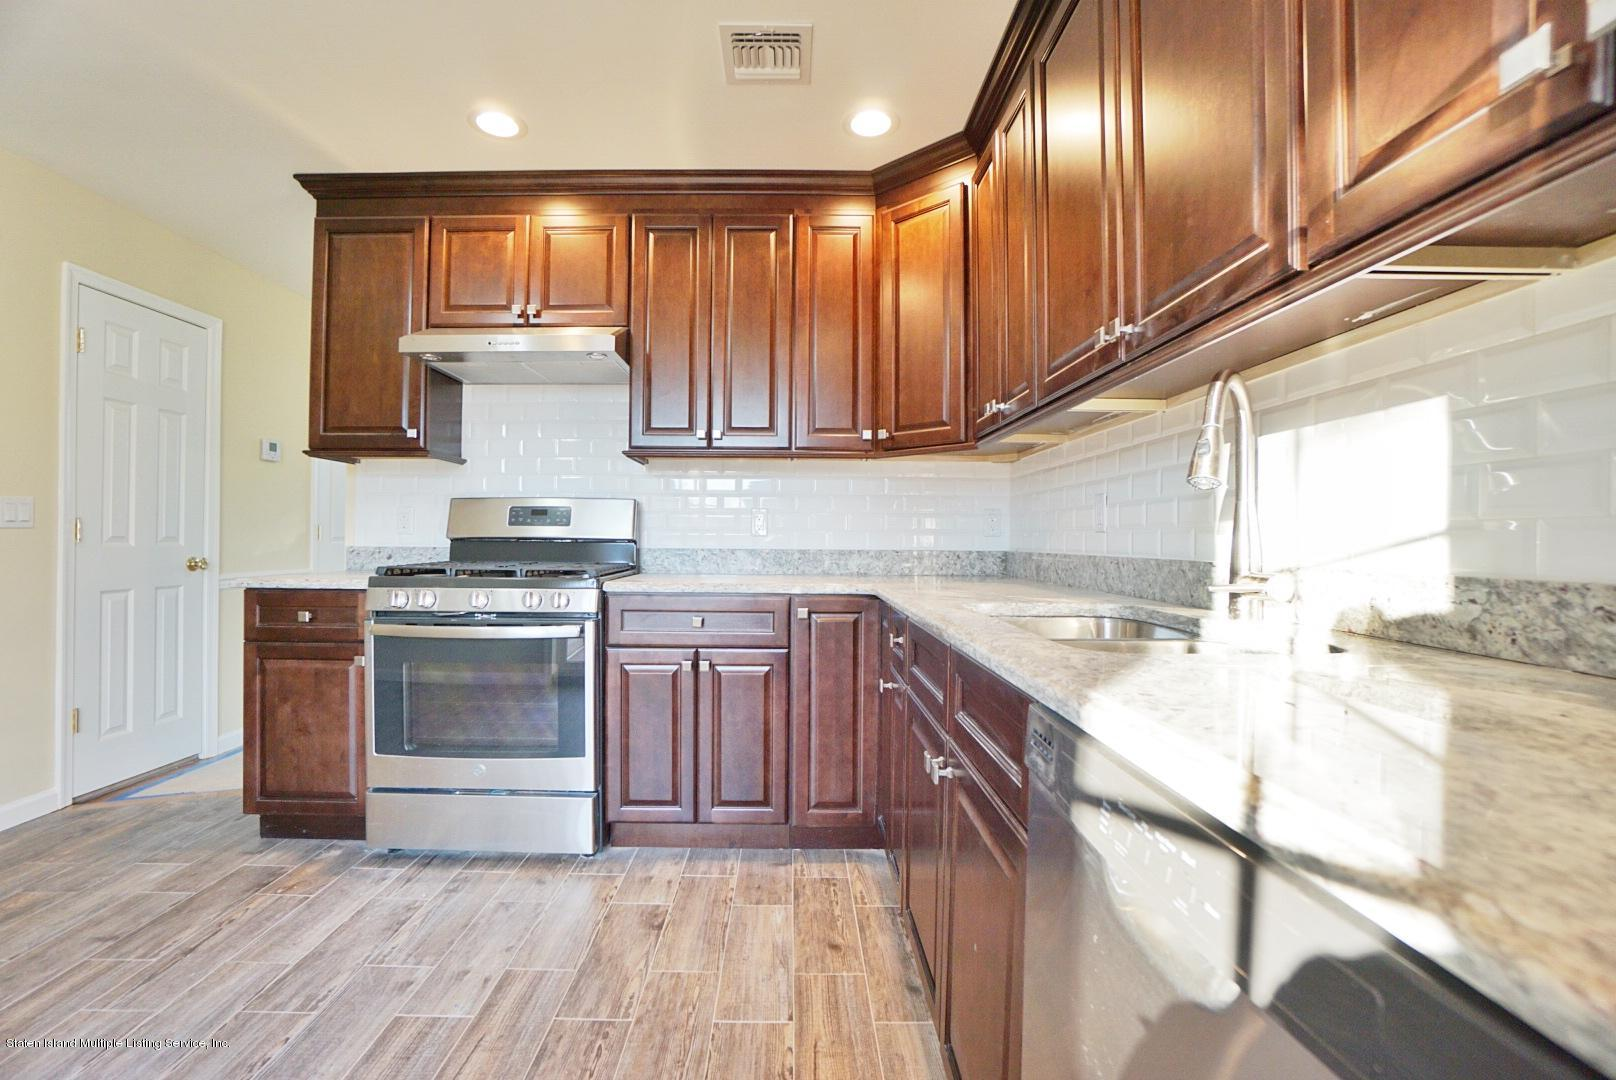 Single Family - Attached 34 Bamberger Lane  Staten Island, NY 10312, MLS-1135521-9